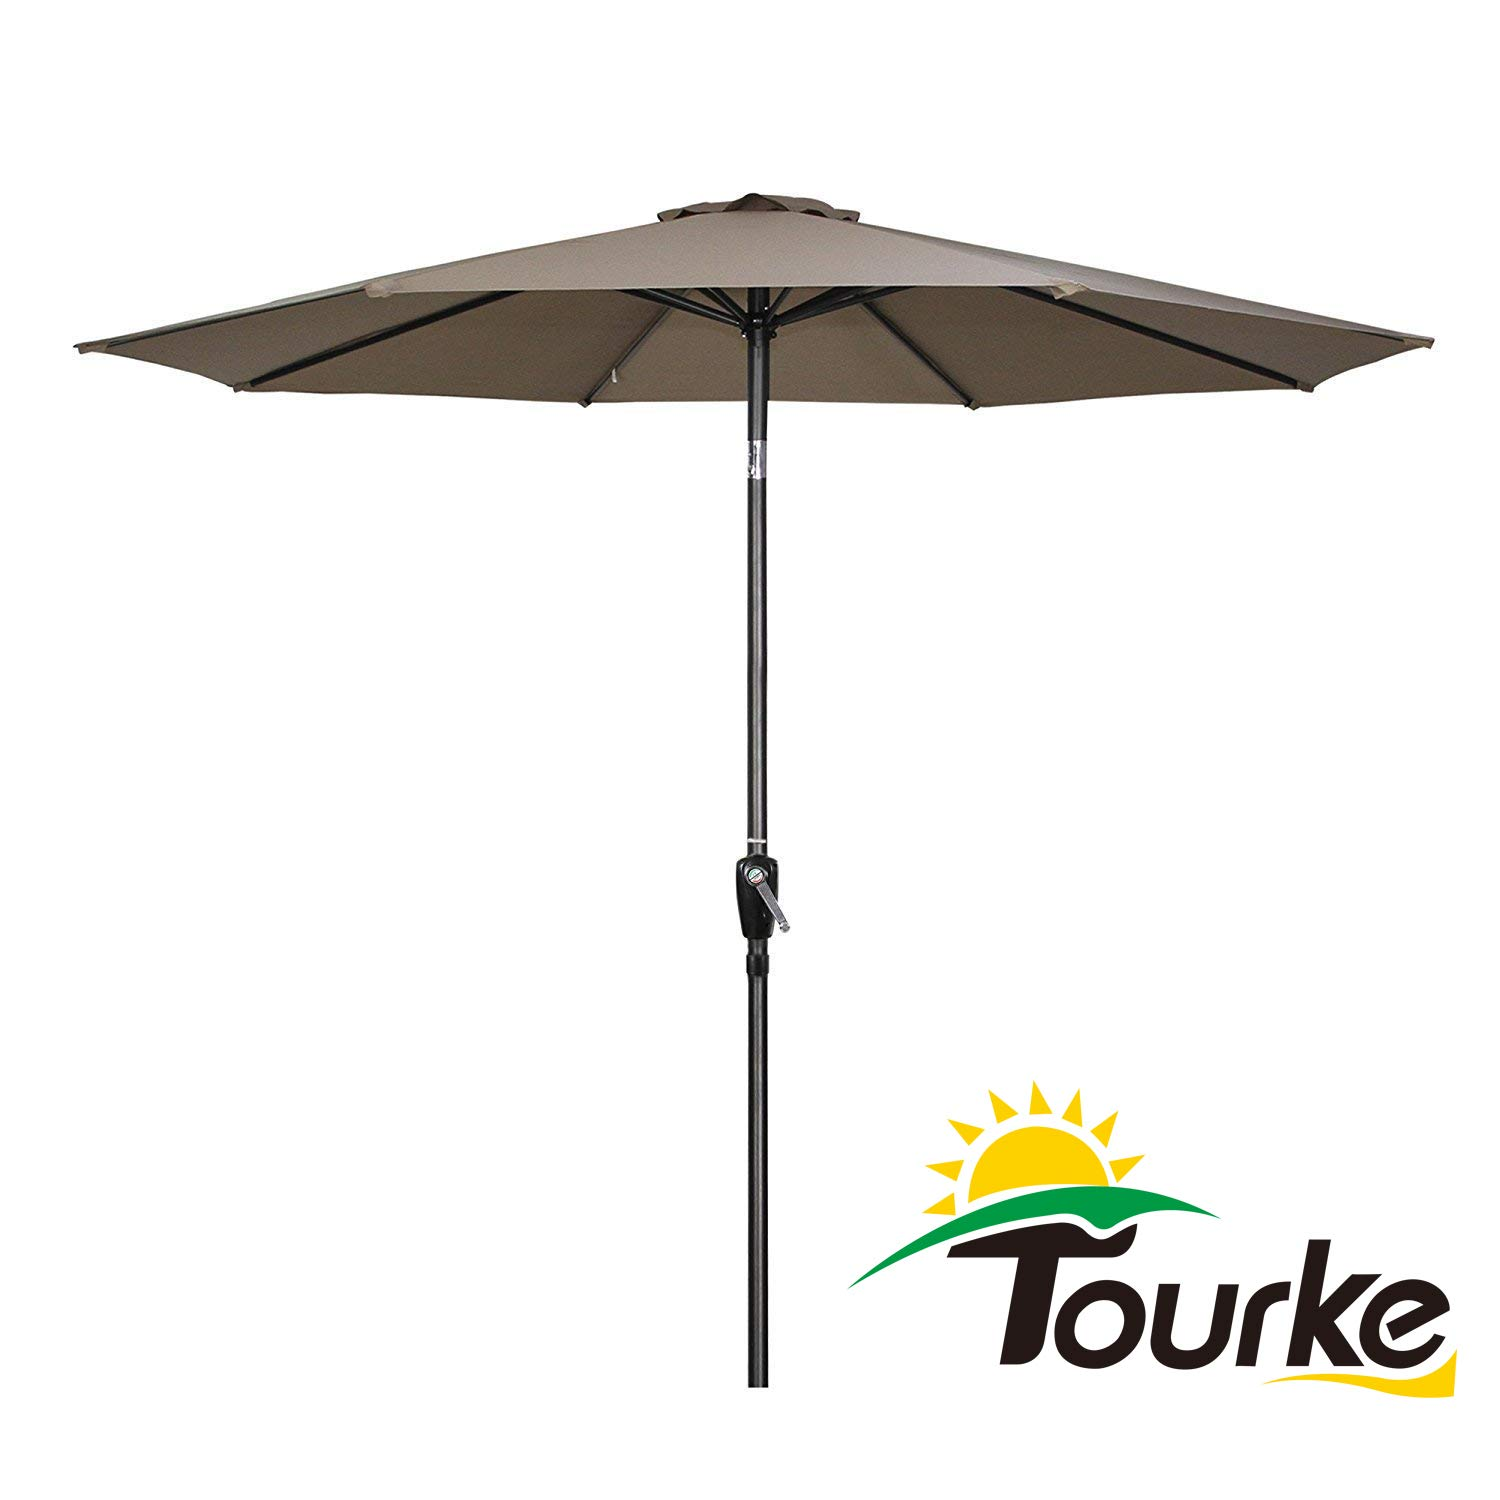 Tourke 9 Ft Patio Umbrella Outdoor Table Umbrella Crank, 8 Rids, Push Button Tilt, for Garden, Deck, Backyard, Swimming Pool and More Taupe